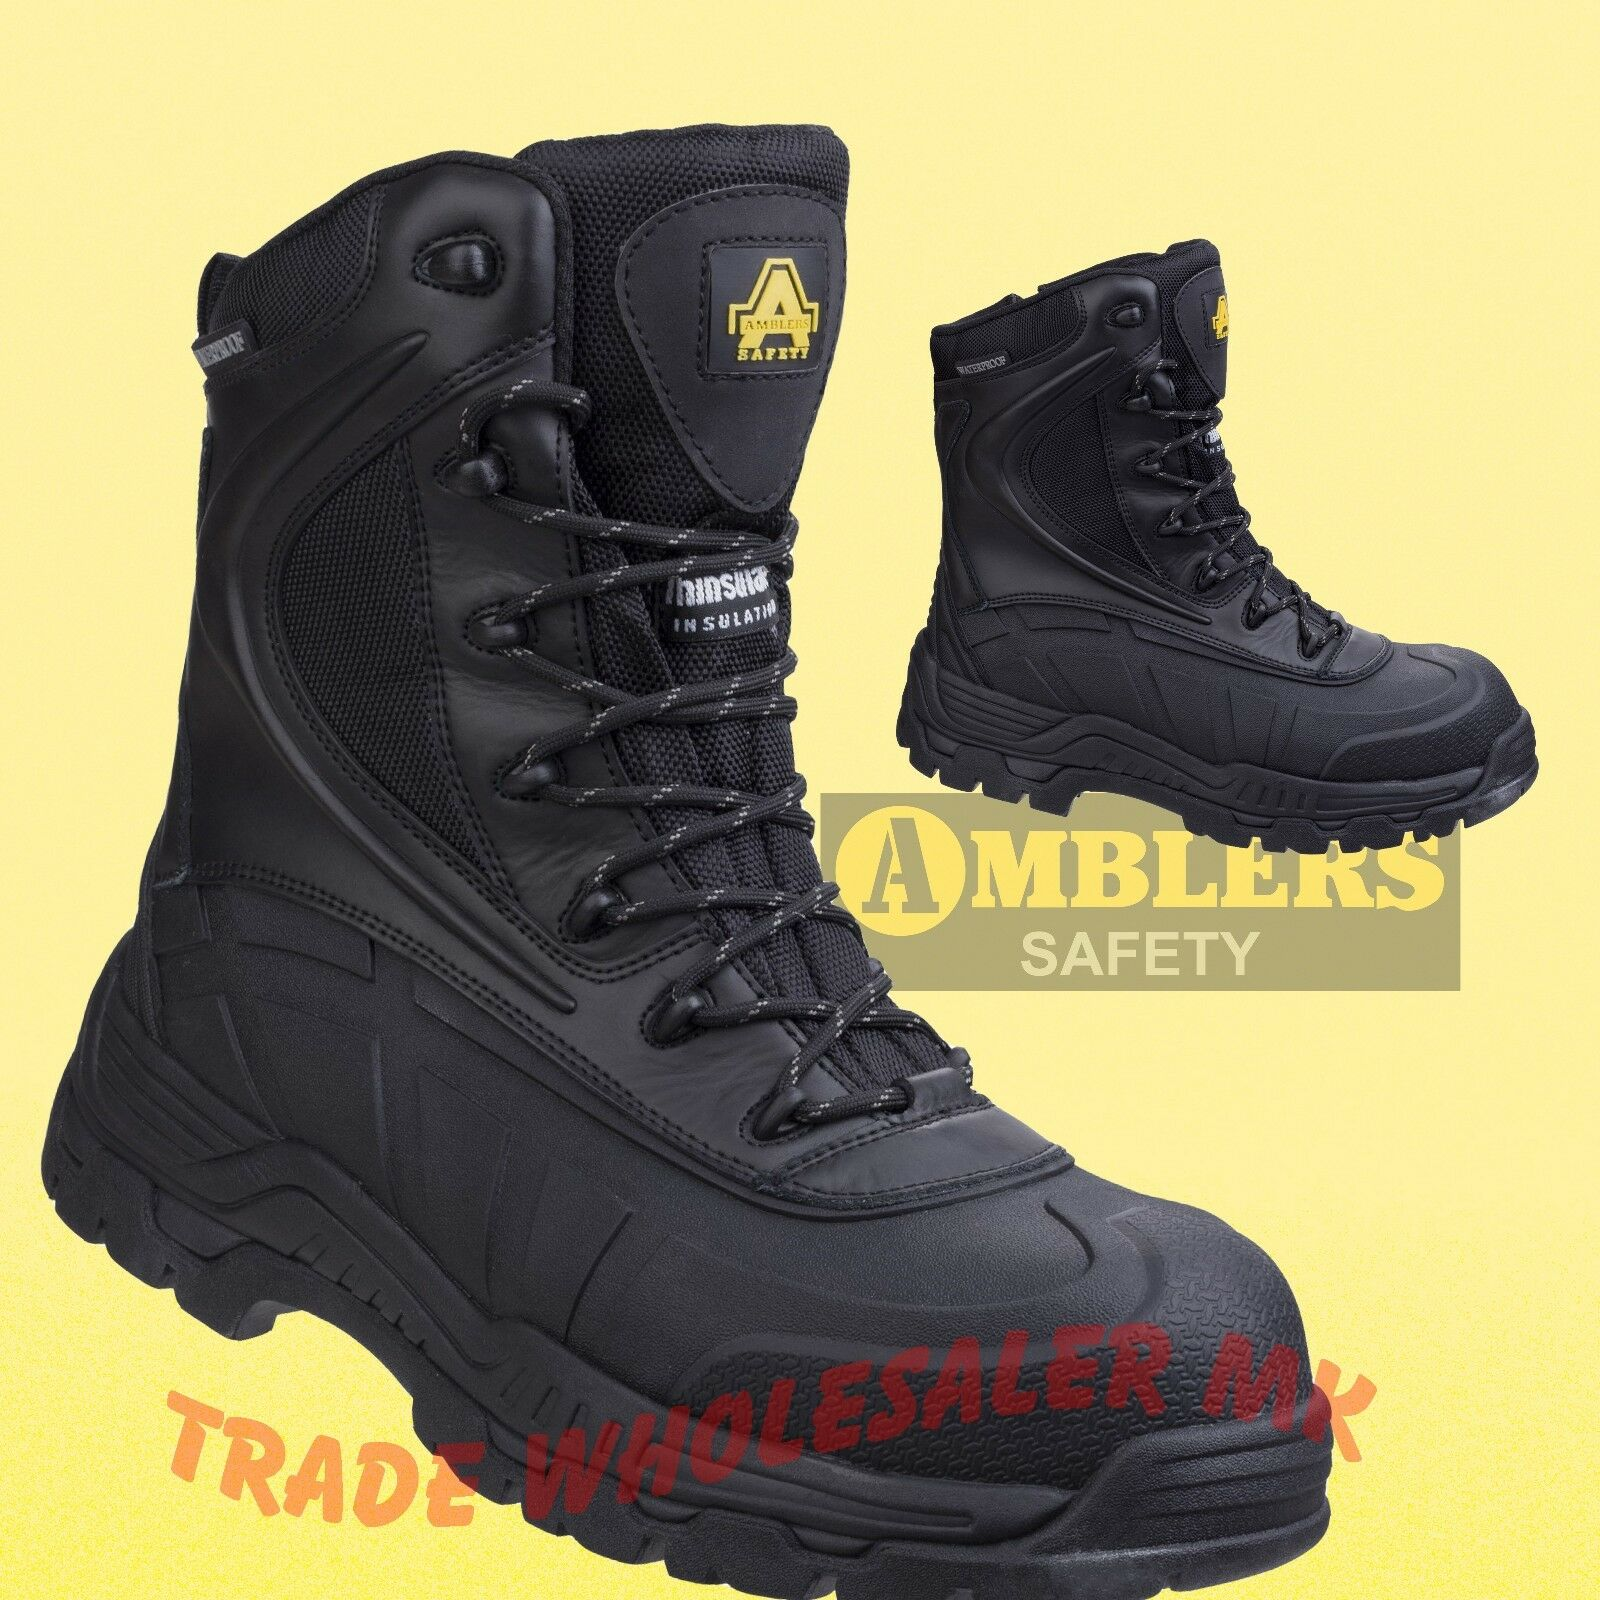 Amblers AS440 Safety S3 WP HRO+W/P SKOMER Safety AS440 botas - Negro - thinsulate lining b5c97f